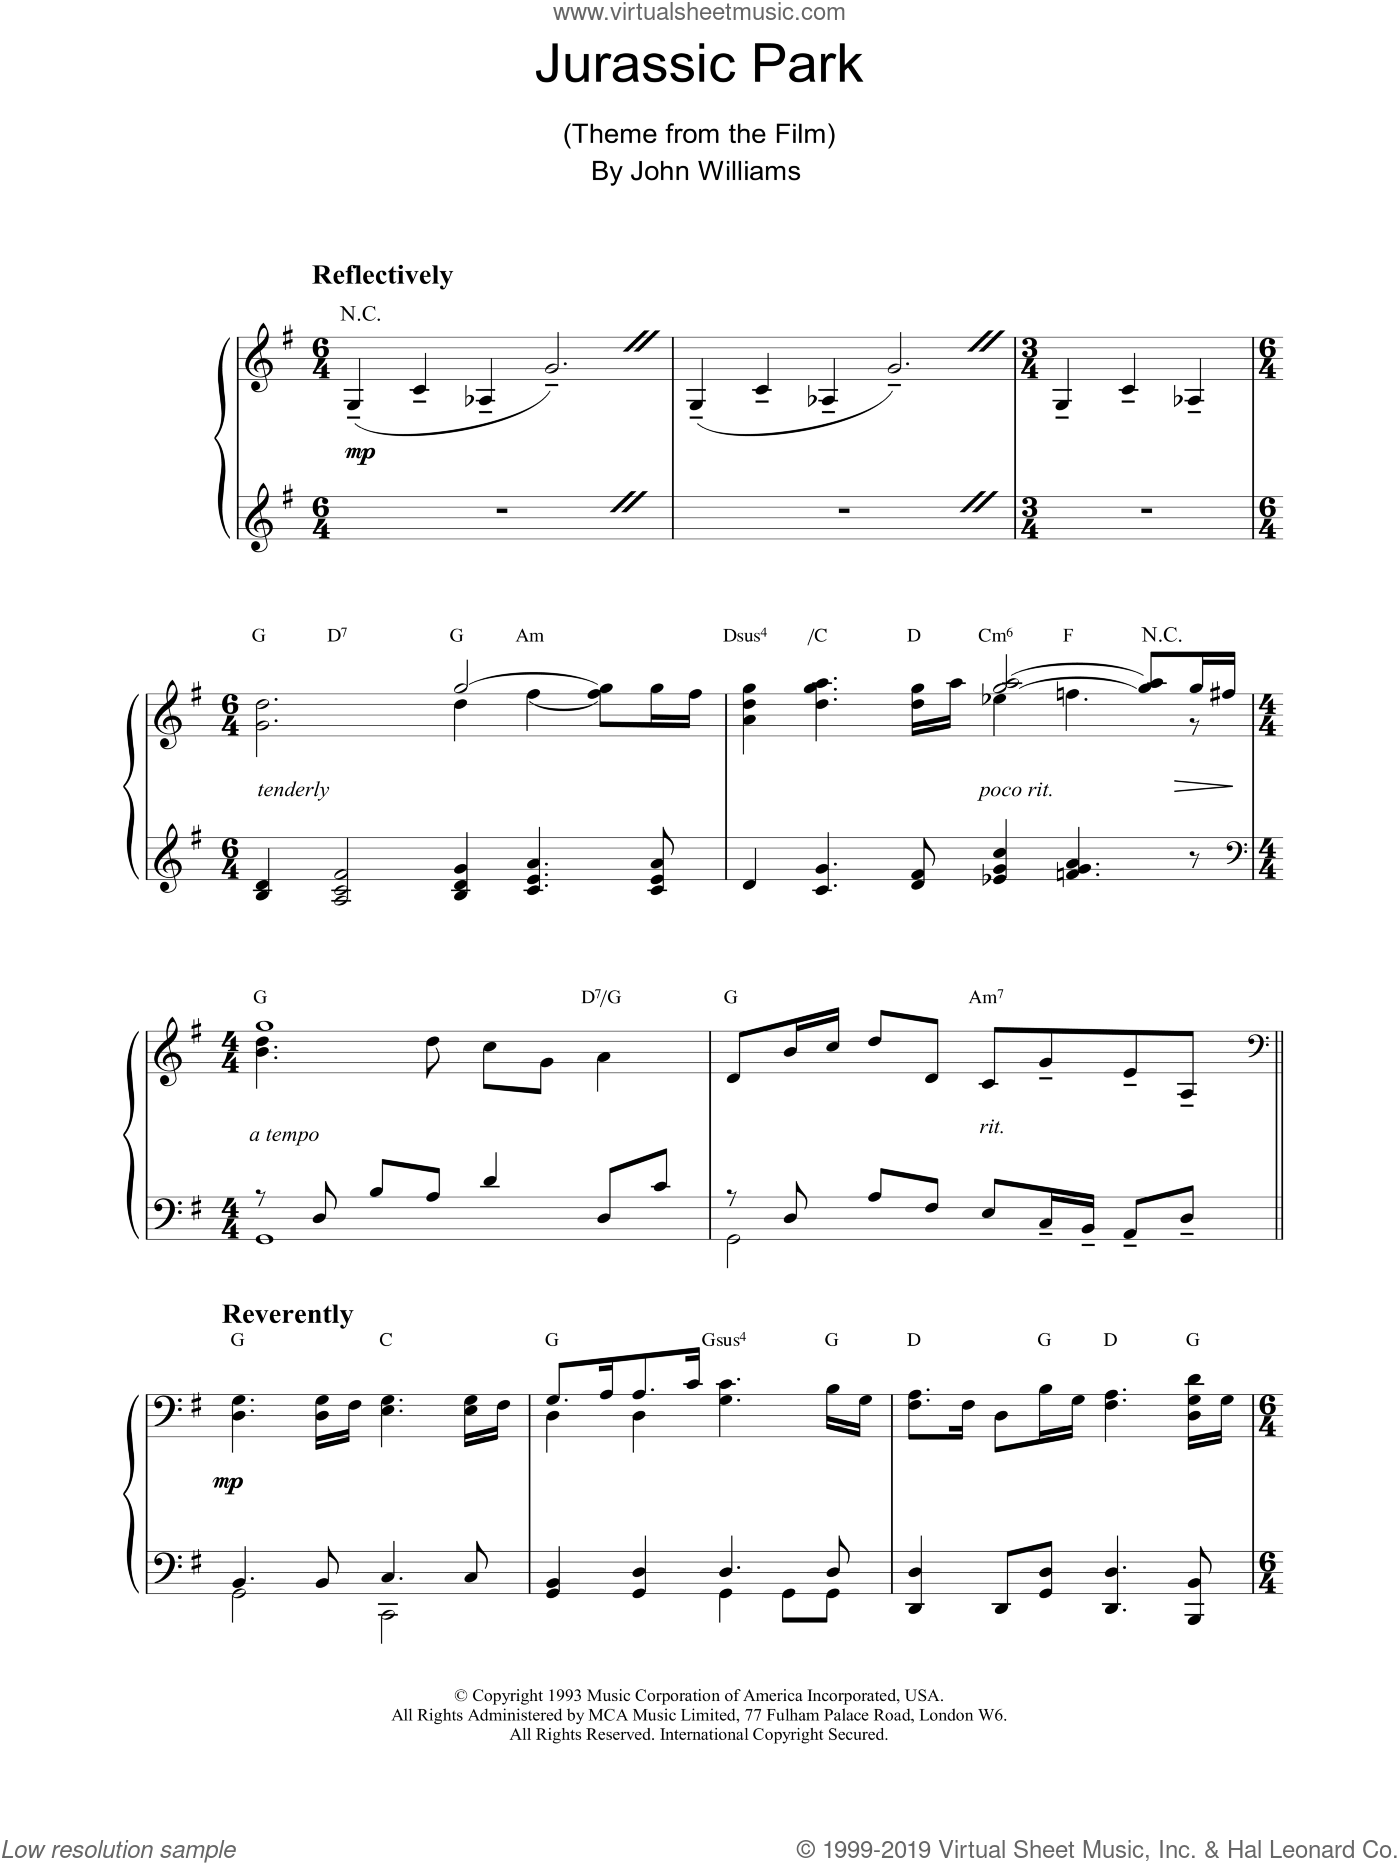 Jurassic Park sheet music for piano solo by John Williams. Score Image Preview.